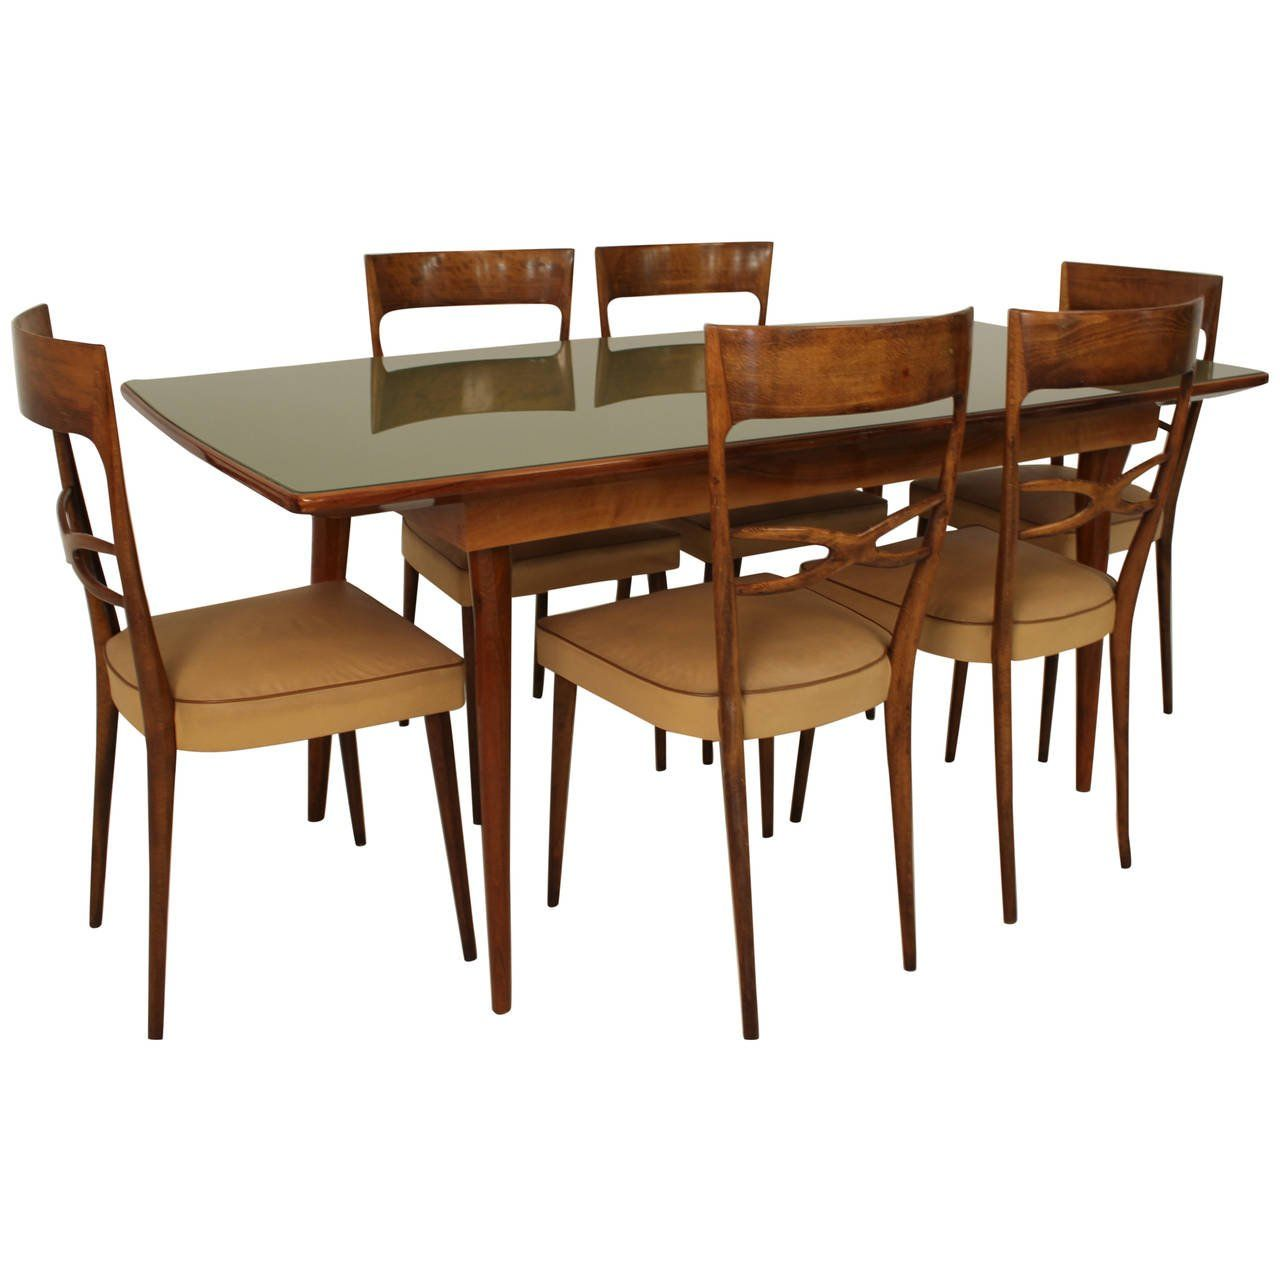 Melchiorre Bega Dining Room Set Attributed Dining Chairs Italian